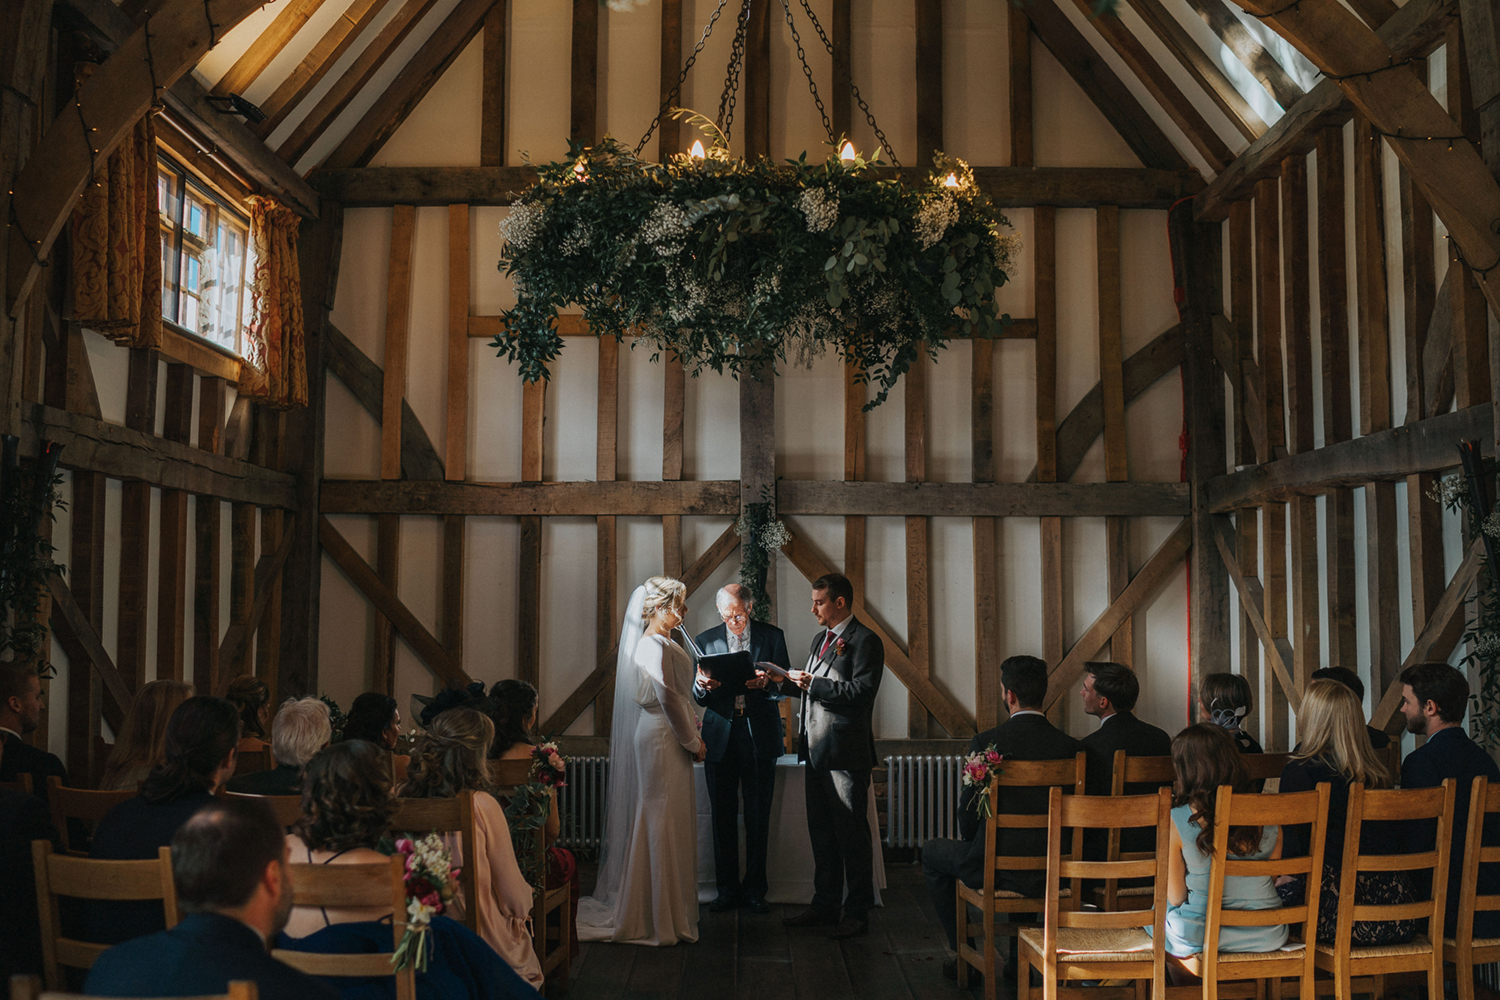 Gate Street Barn Wedding Photography 0049.jpg